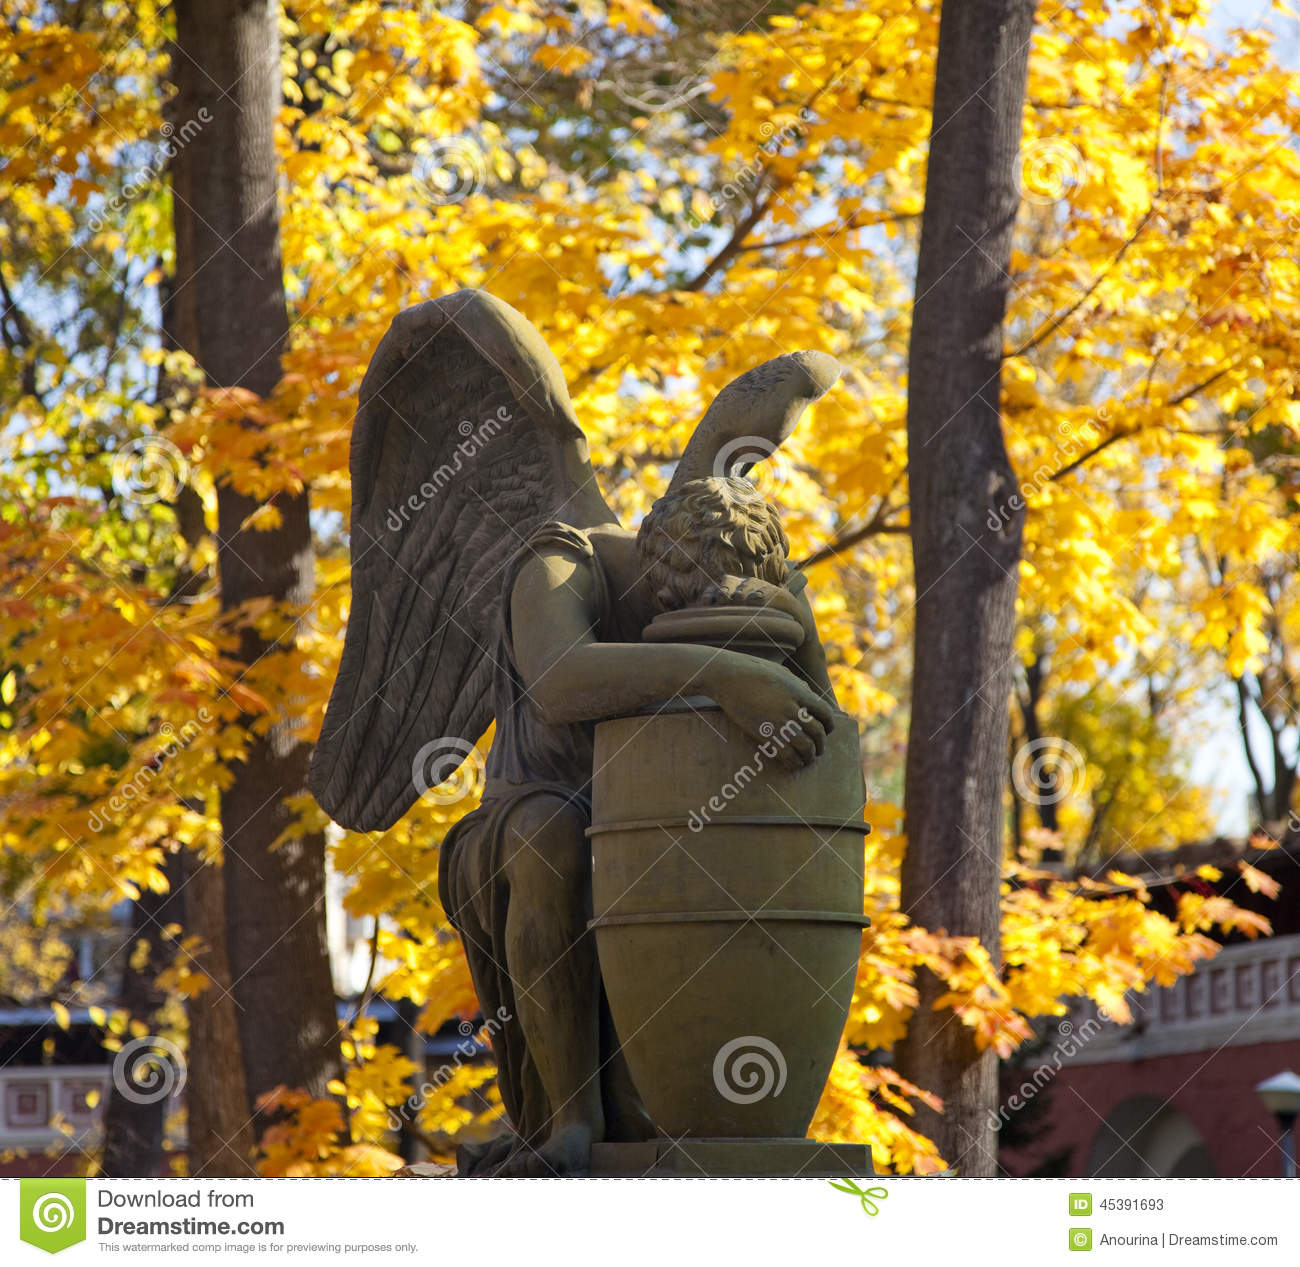 Weeping Angel at autumn